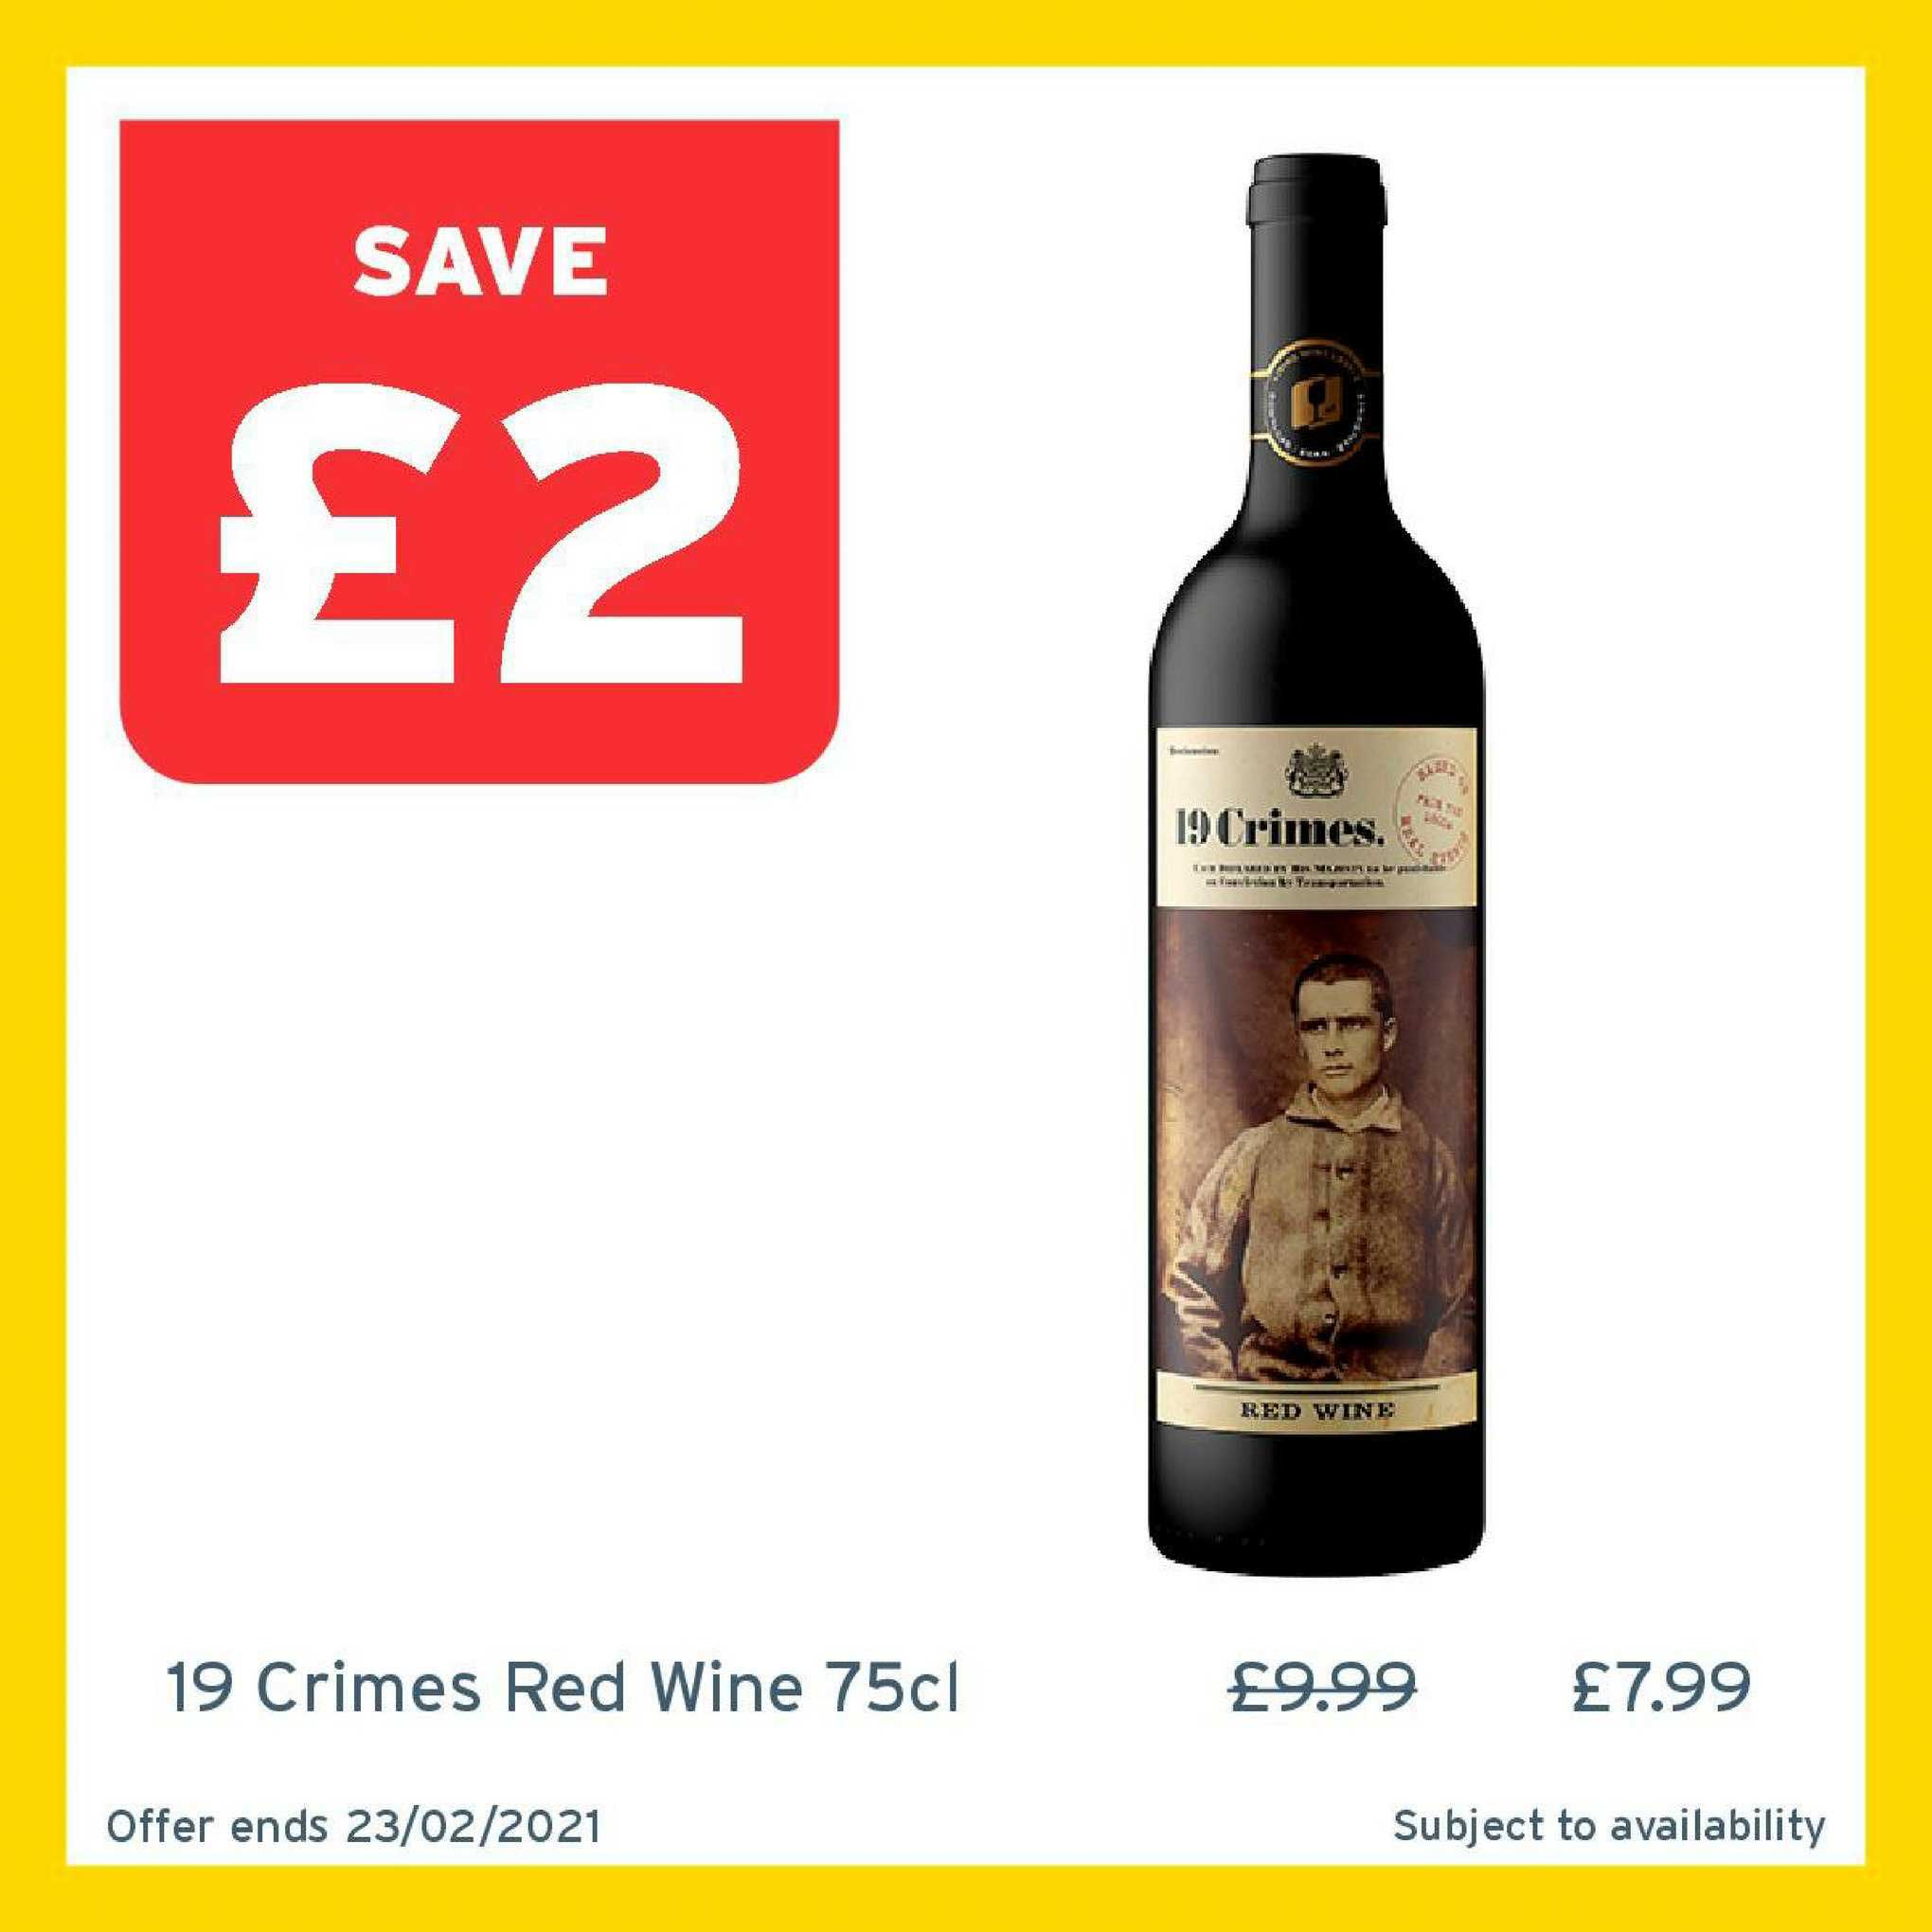 One Stop 19 Crimes Red Wine 75cl